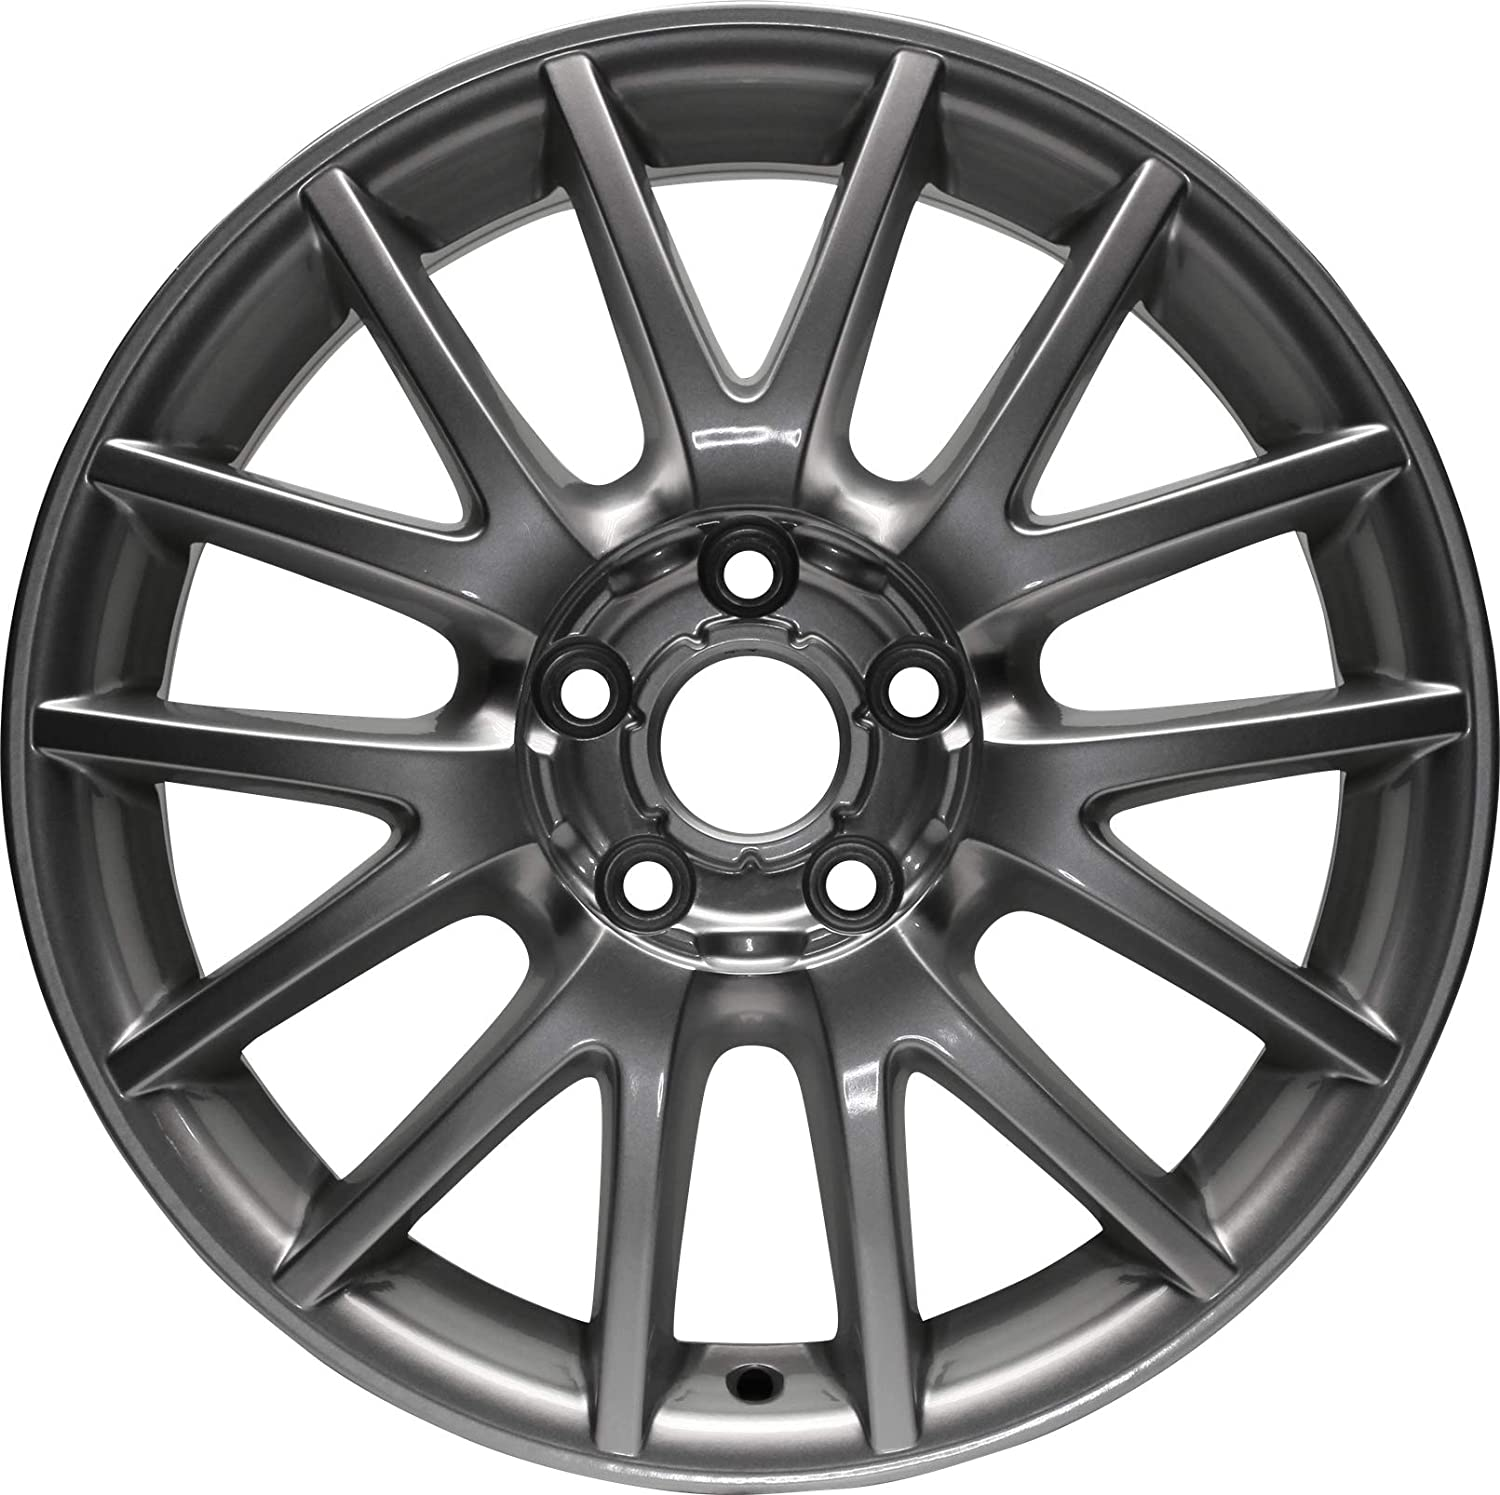 Amazon Com Partsynergy Replacement For New Replica Aluminum Alloy Wheel Rim 17 Inch Fits 06 14 Volkswagen Jetta 14 Spokes 5 108mm Automotive